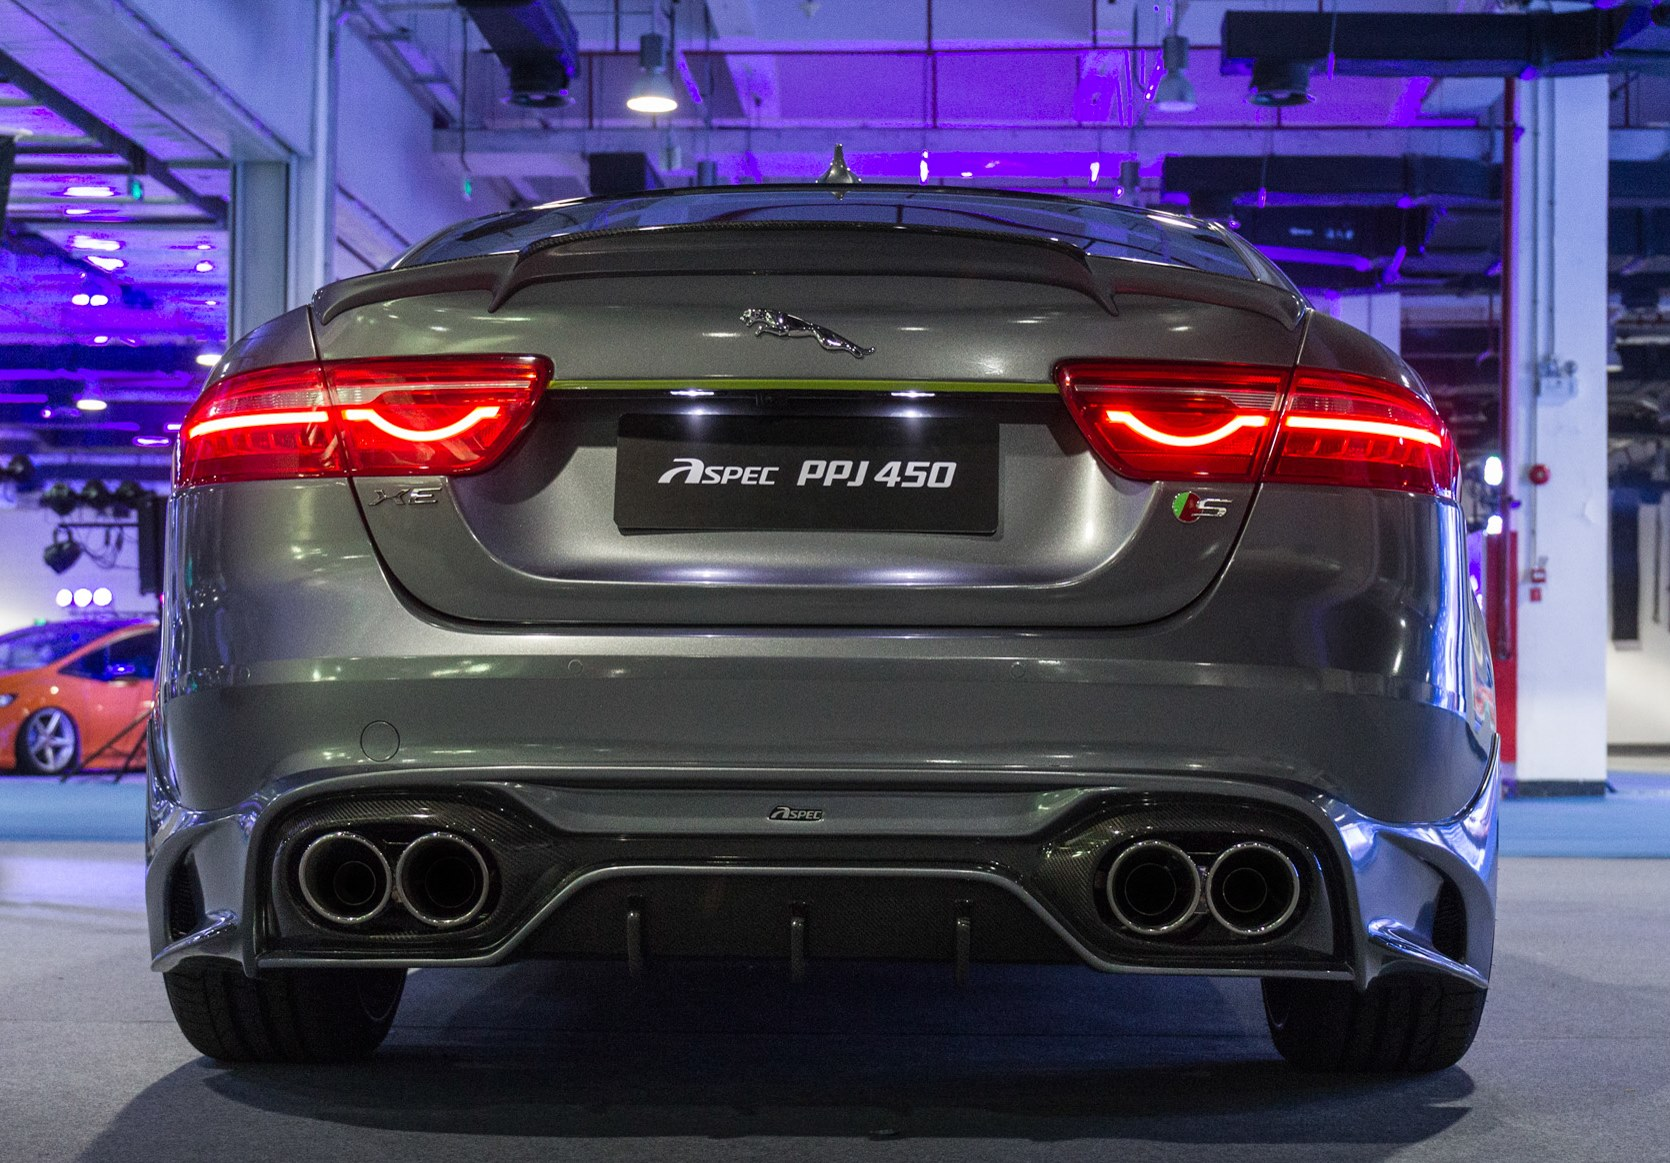 Jaguar XE Body Kit With Vented Hood Comes from China's Tuner Aspec - autoevolution